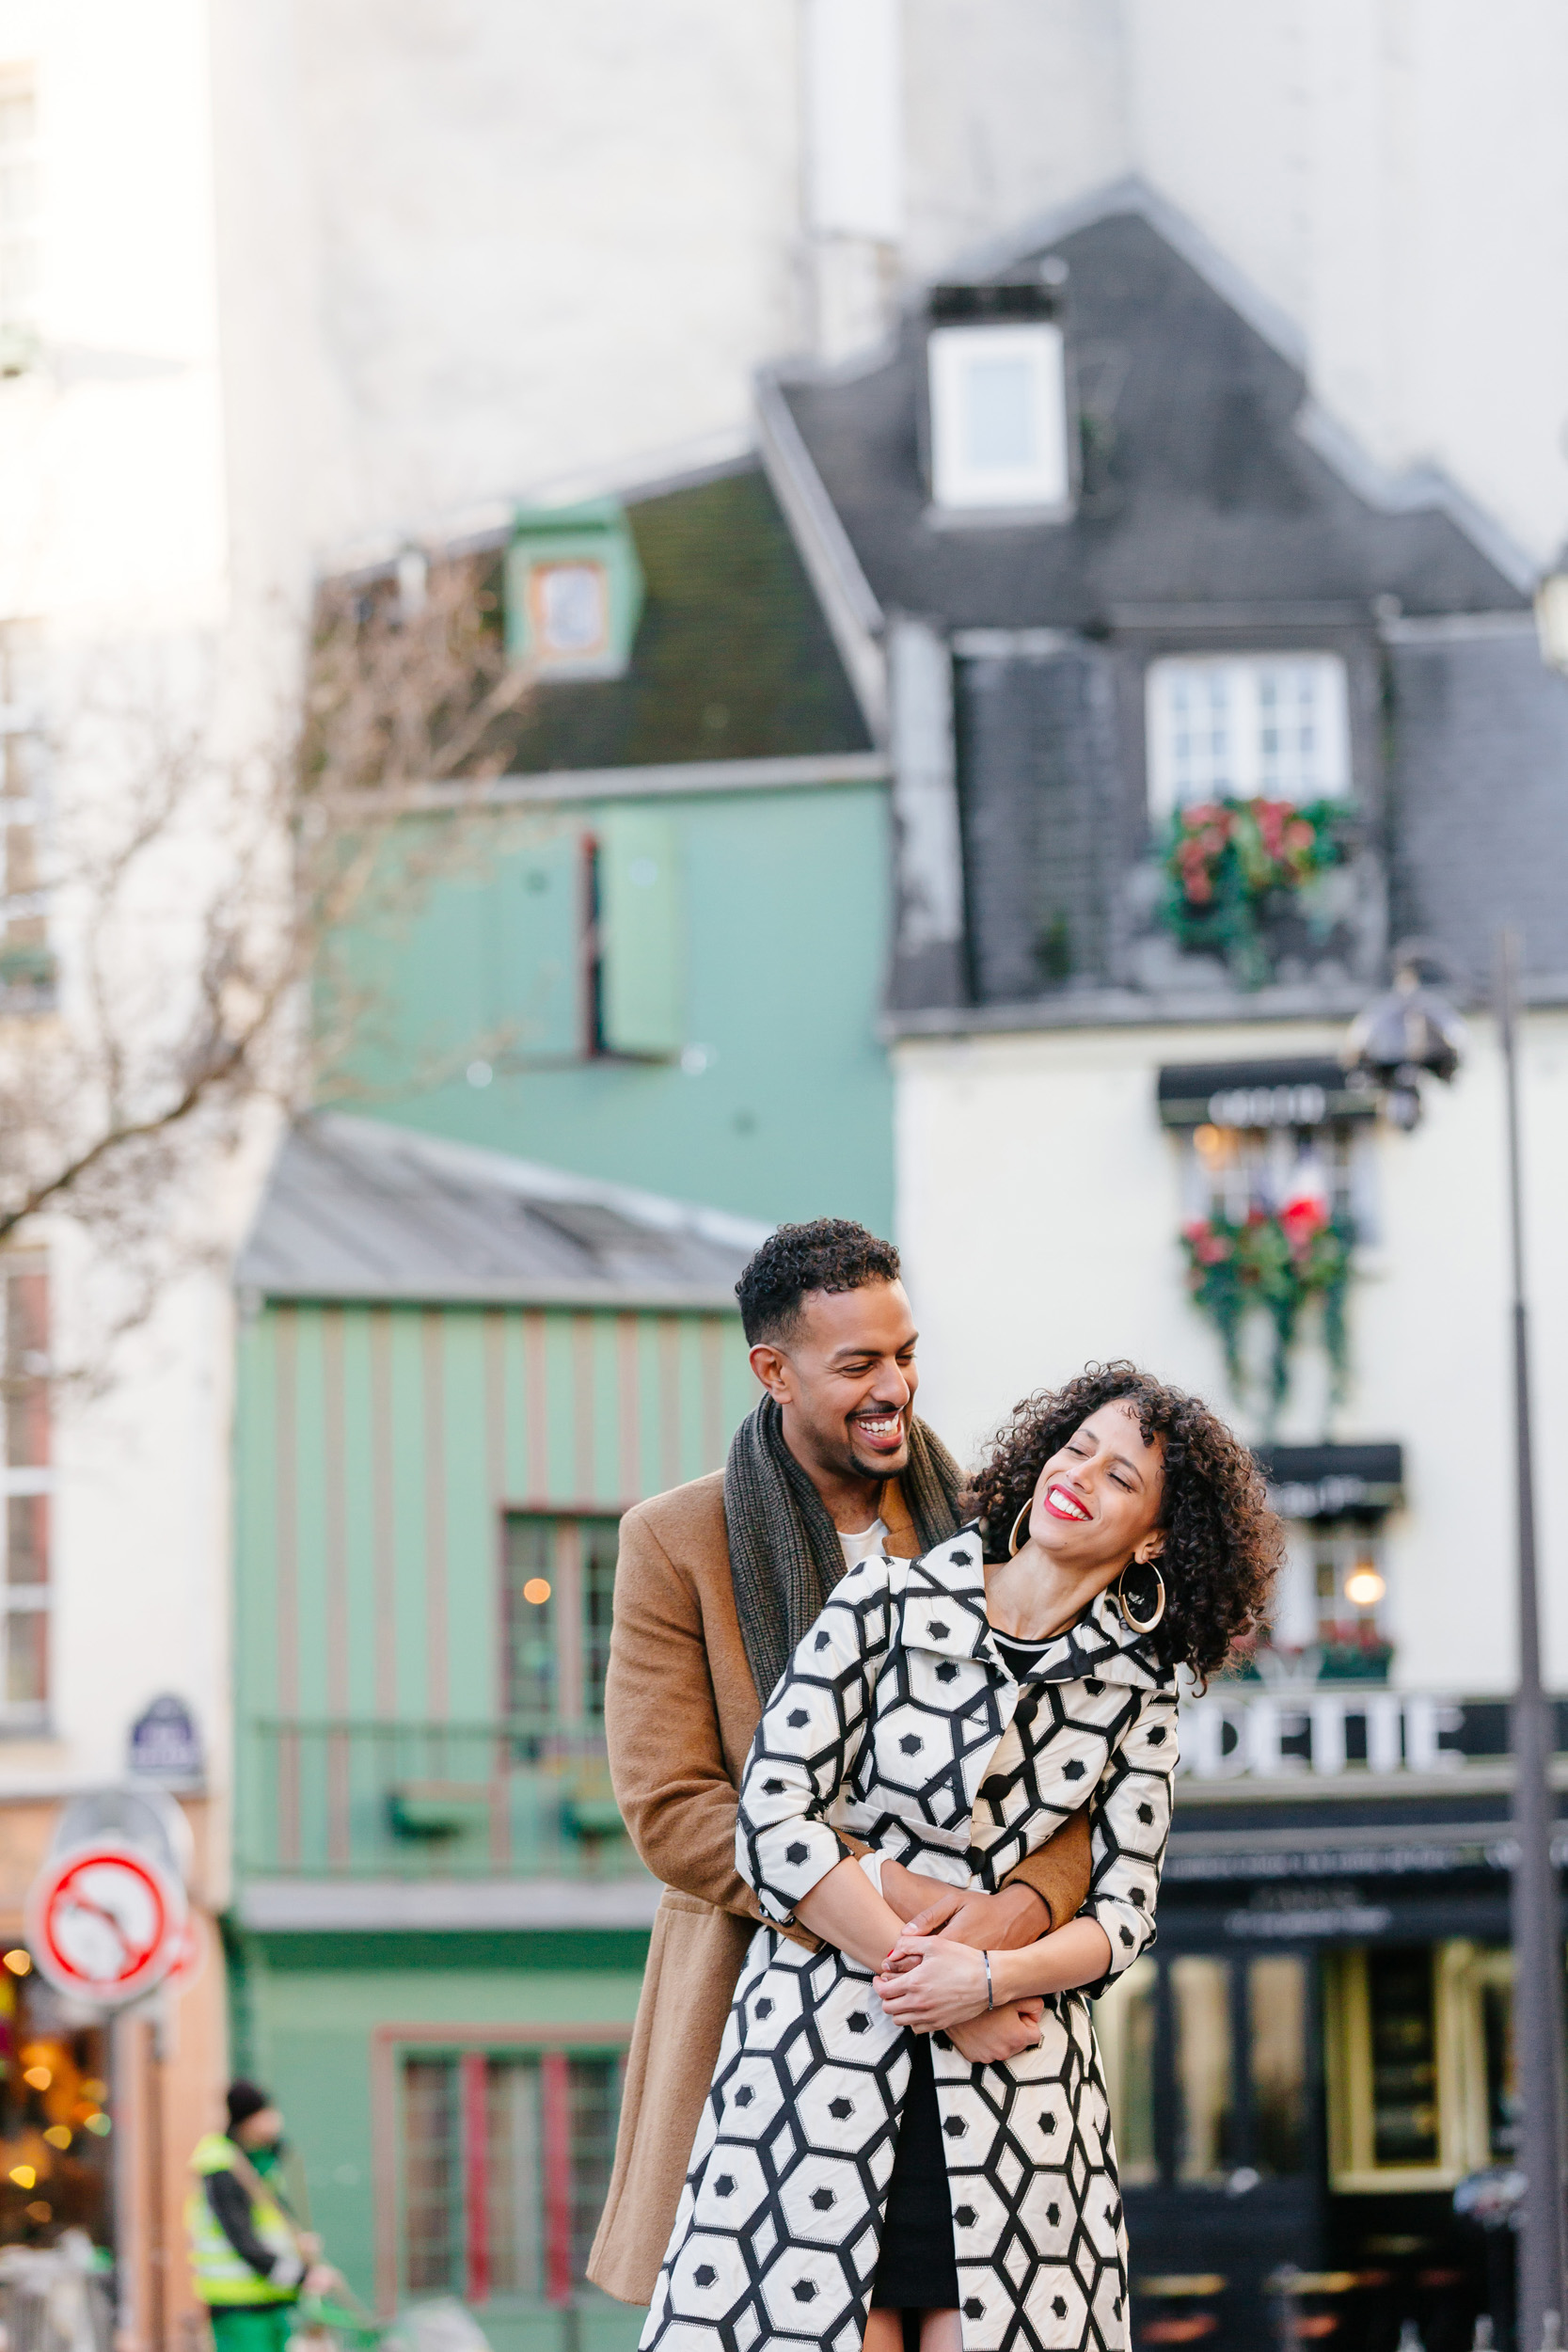 Couple session portrait at cafe Odette captured by Paris Photographer Federico Guendel IheartParis www.iheartparis.fr